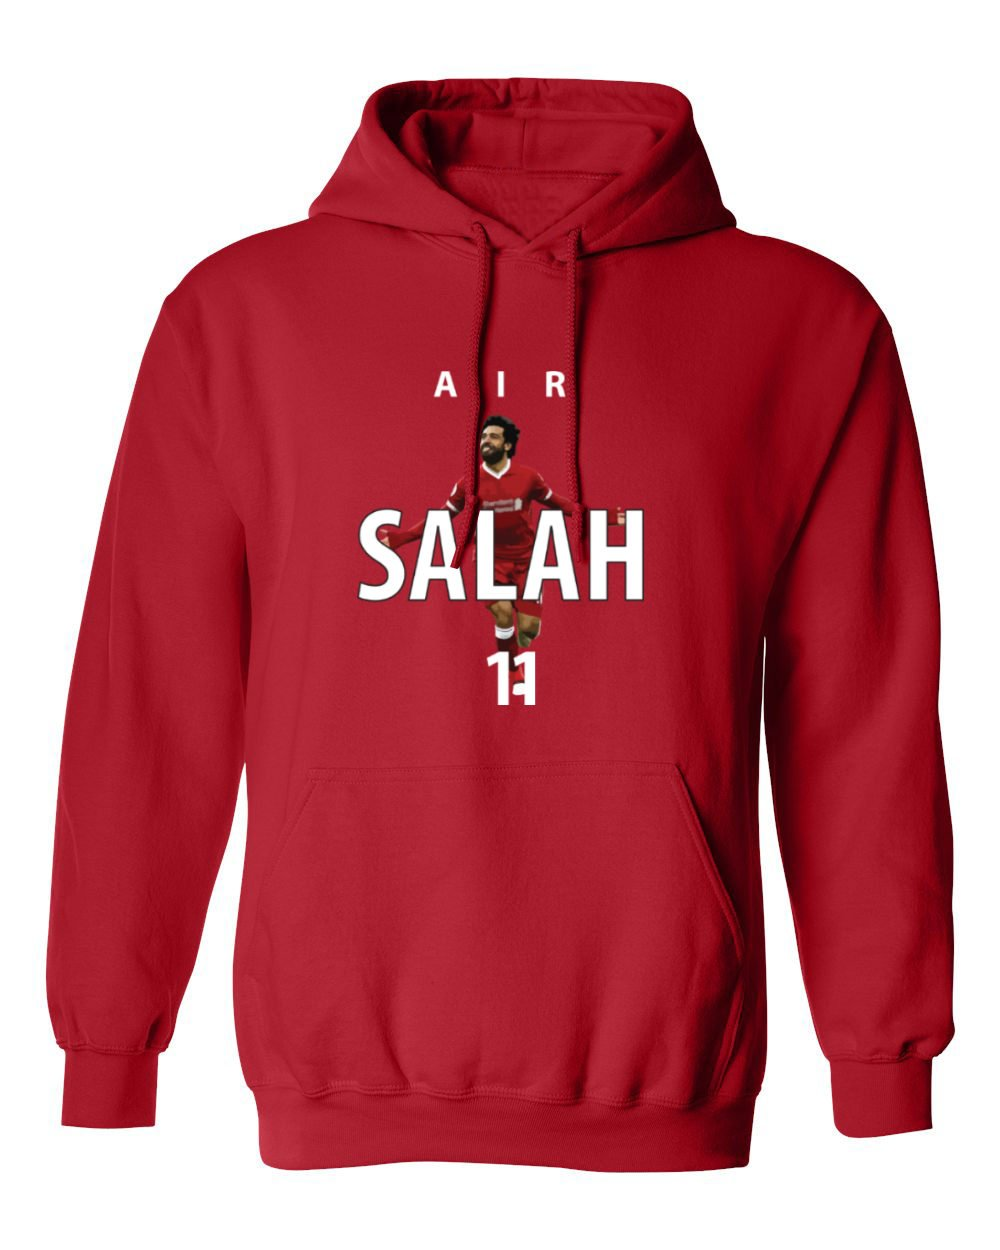 Amazon.com   Tcamp Soccer Liverpool Air Salah  11 Mohamed Salah Men s  Hooded Sweatshirt   Sports   Outdoors 850e13144